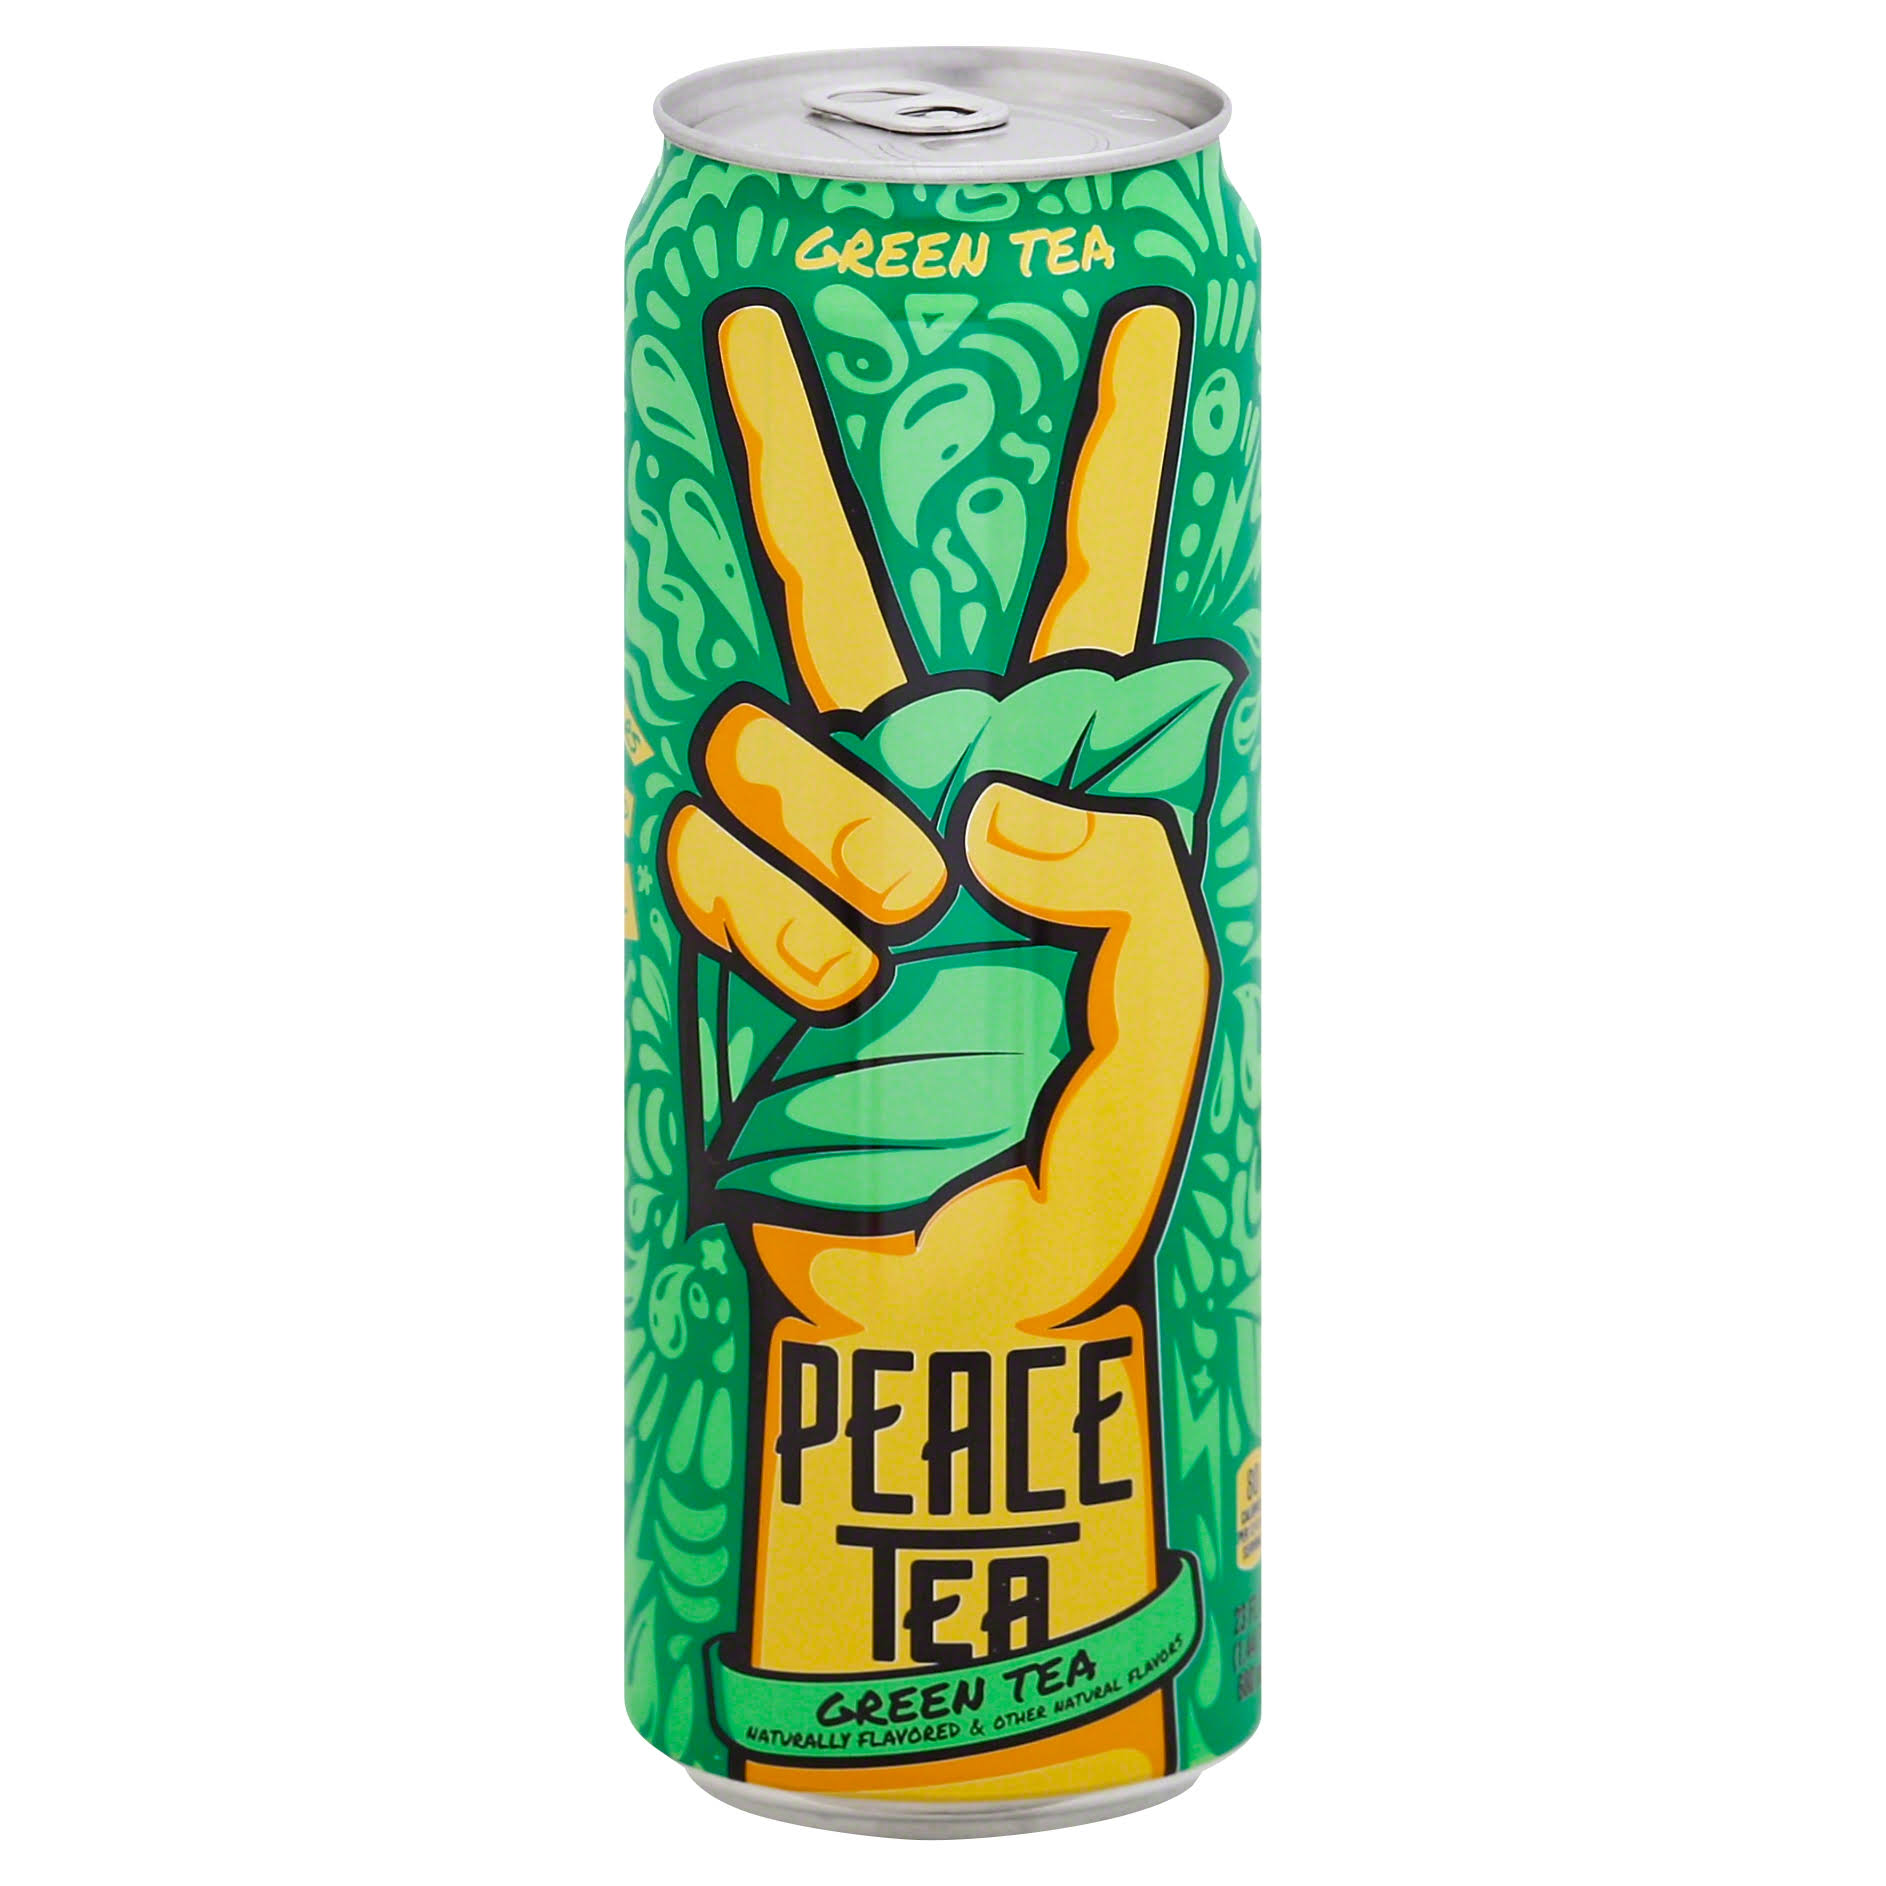 Peace Tea Green Tea - 23 fl oz